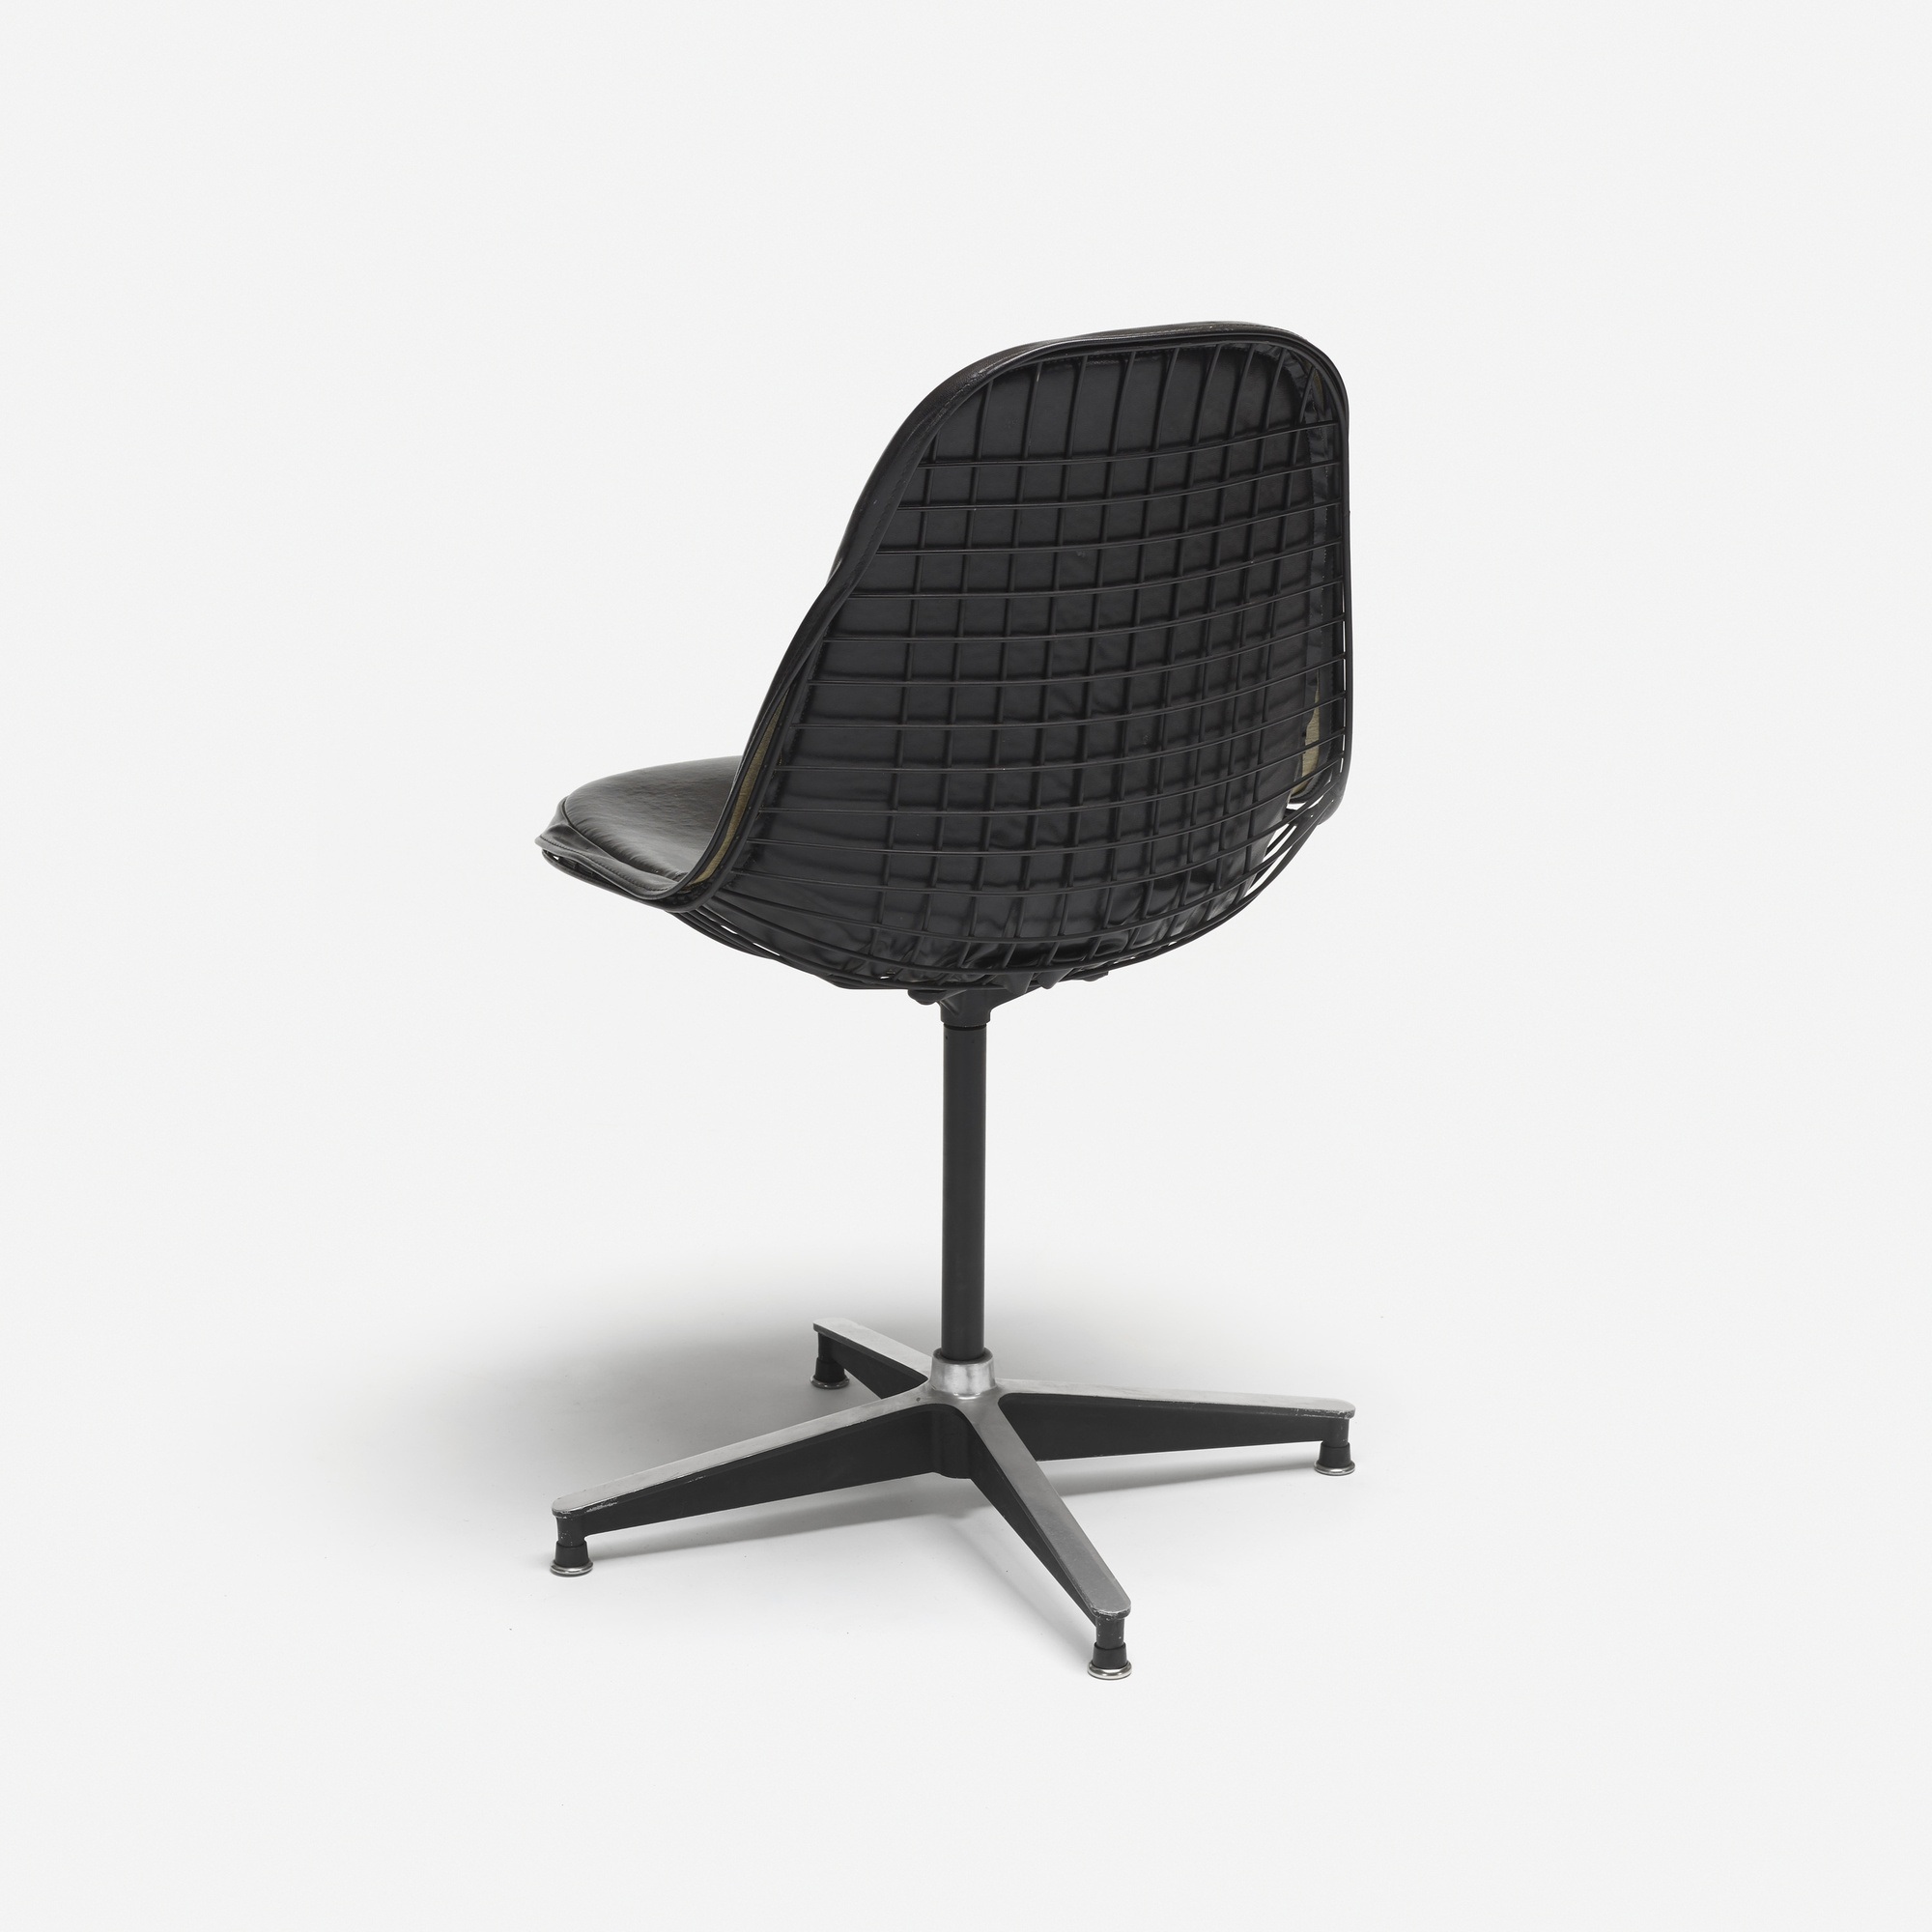 266: Charles and Ray Eames / PKC-1 (1 of 2)